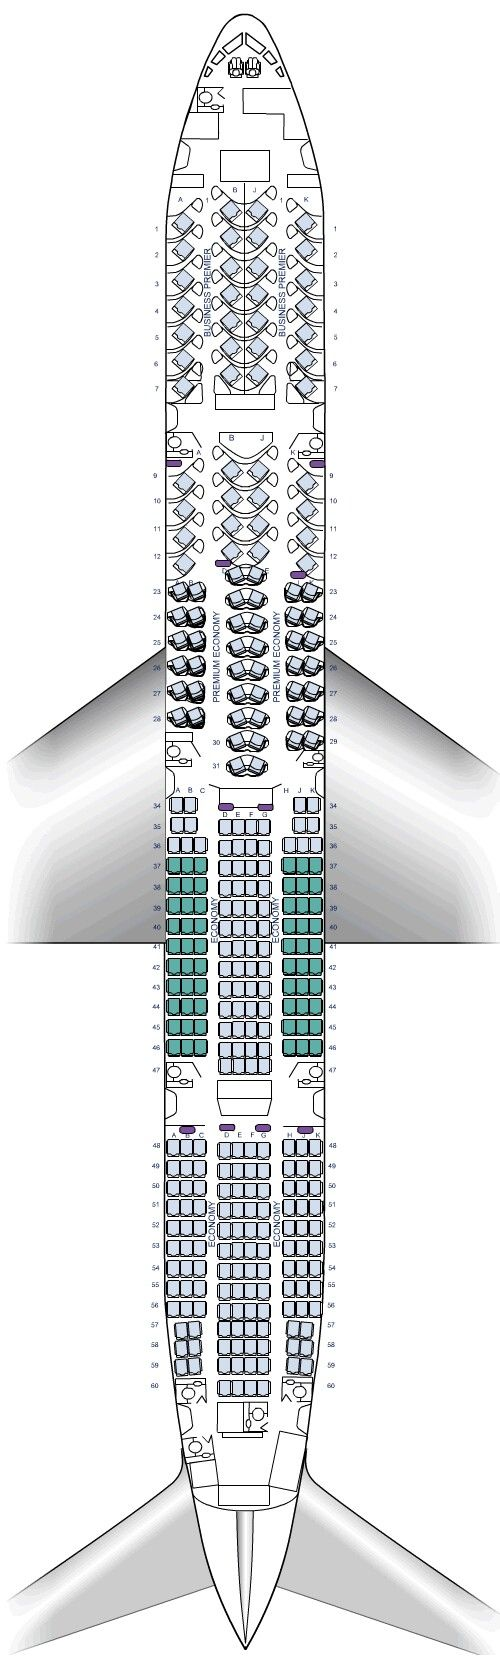 25 Best Ideas About Boeing 777 300er Seating On Pinterest